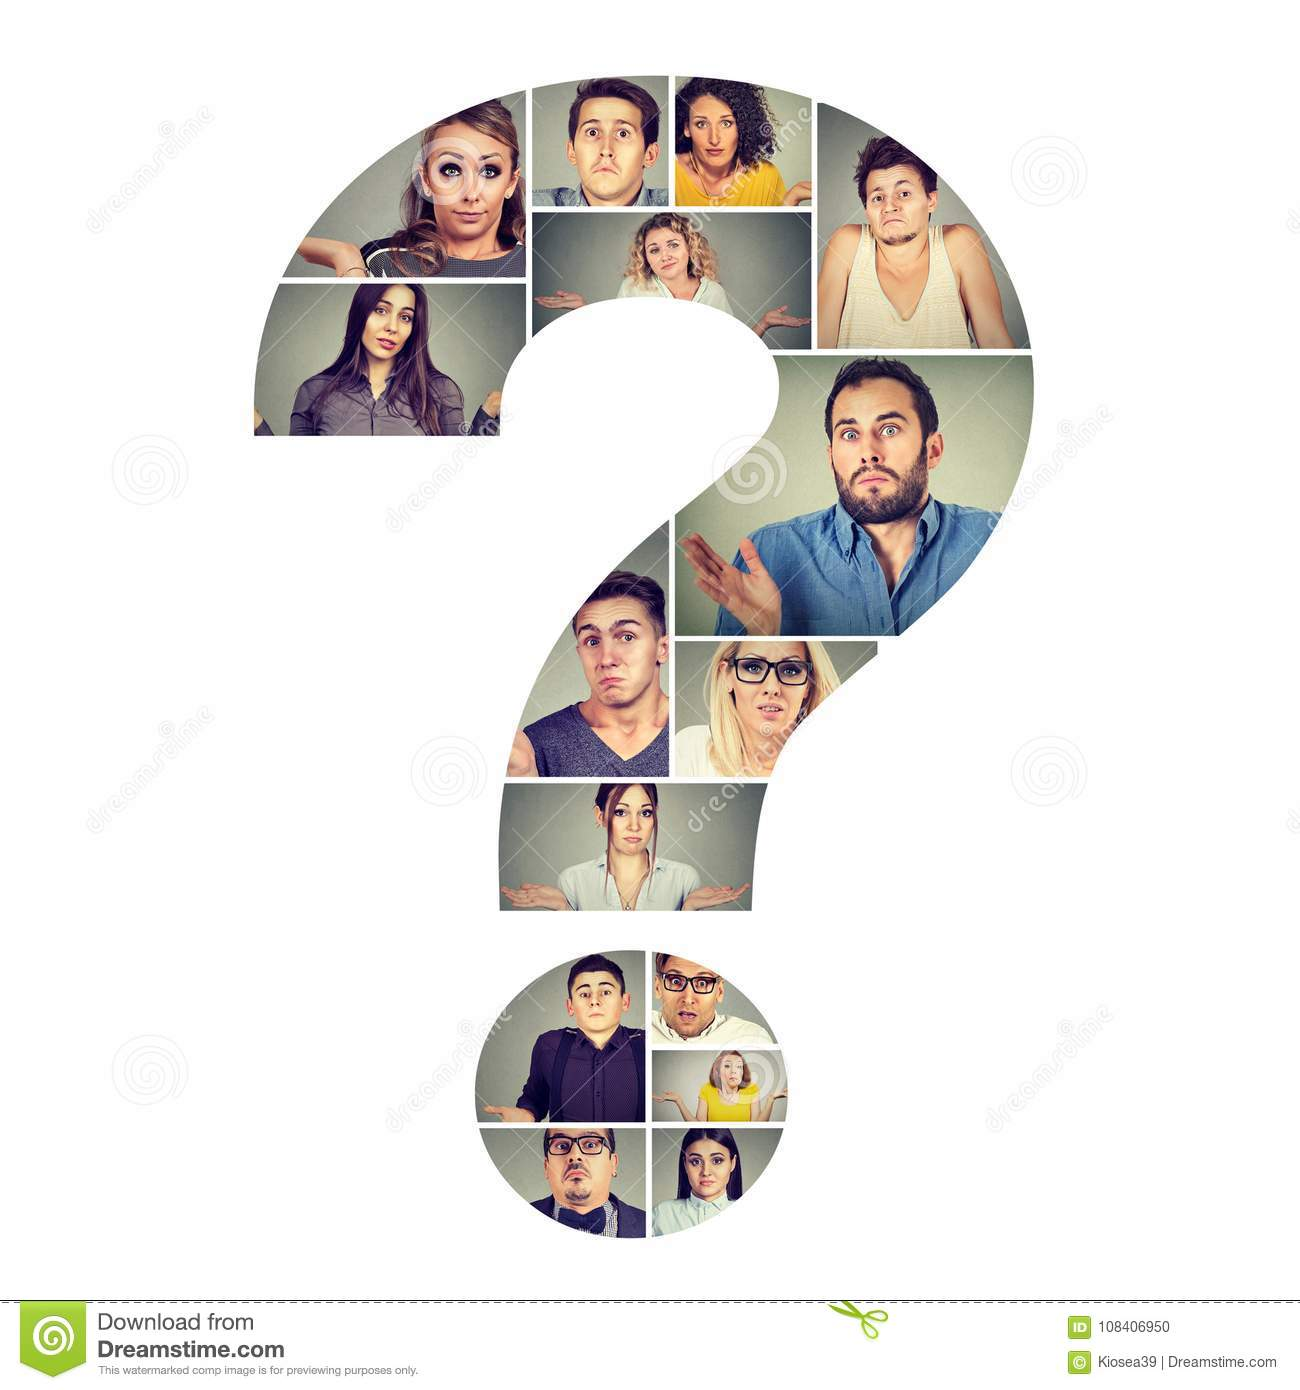 Group of puzzled people in question mark